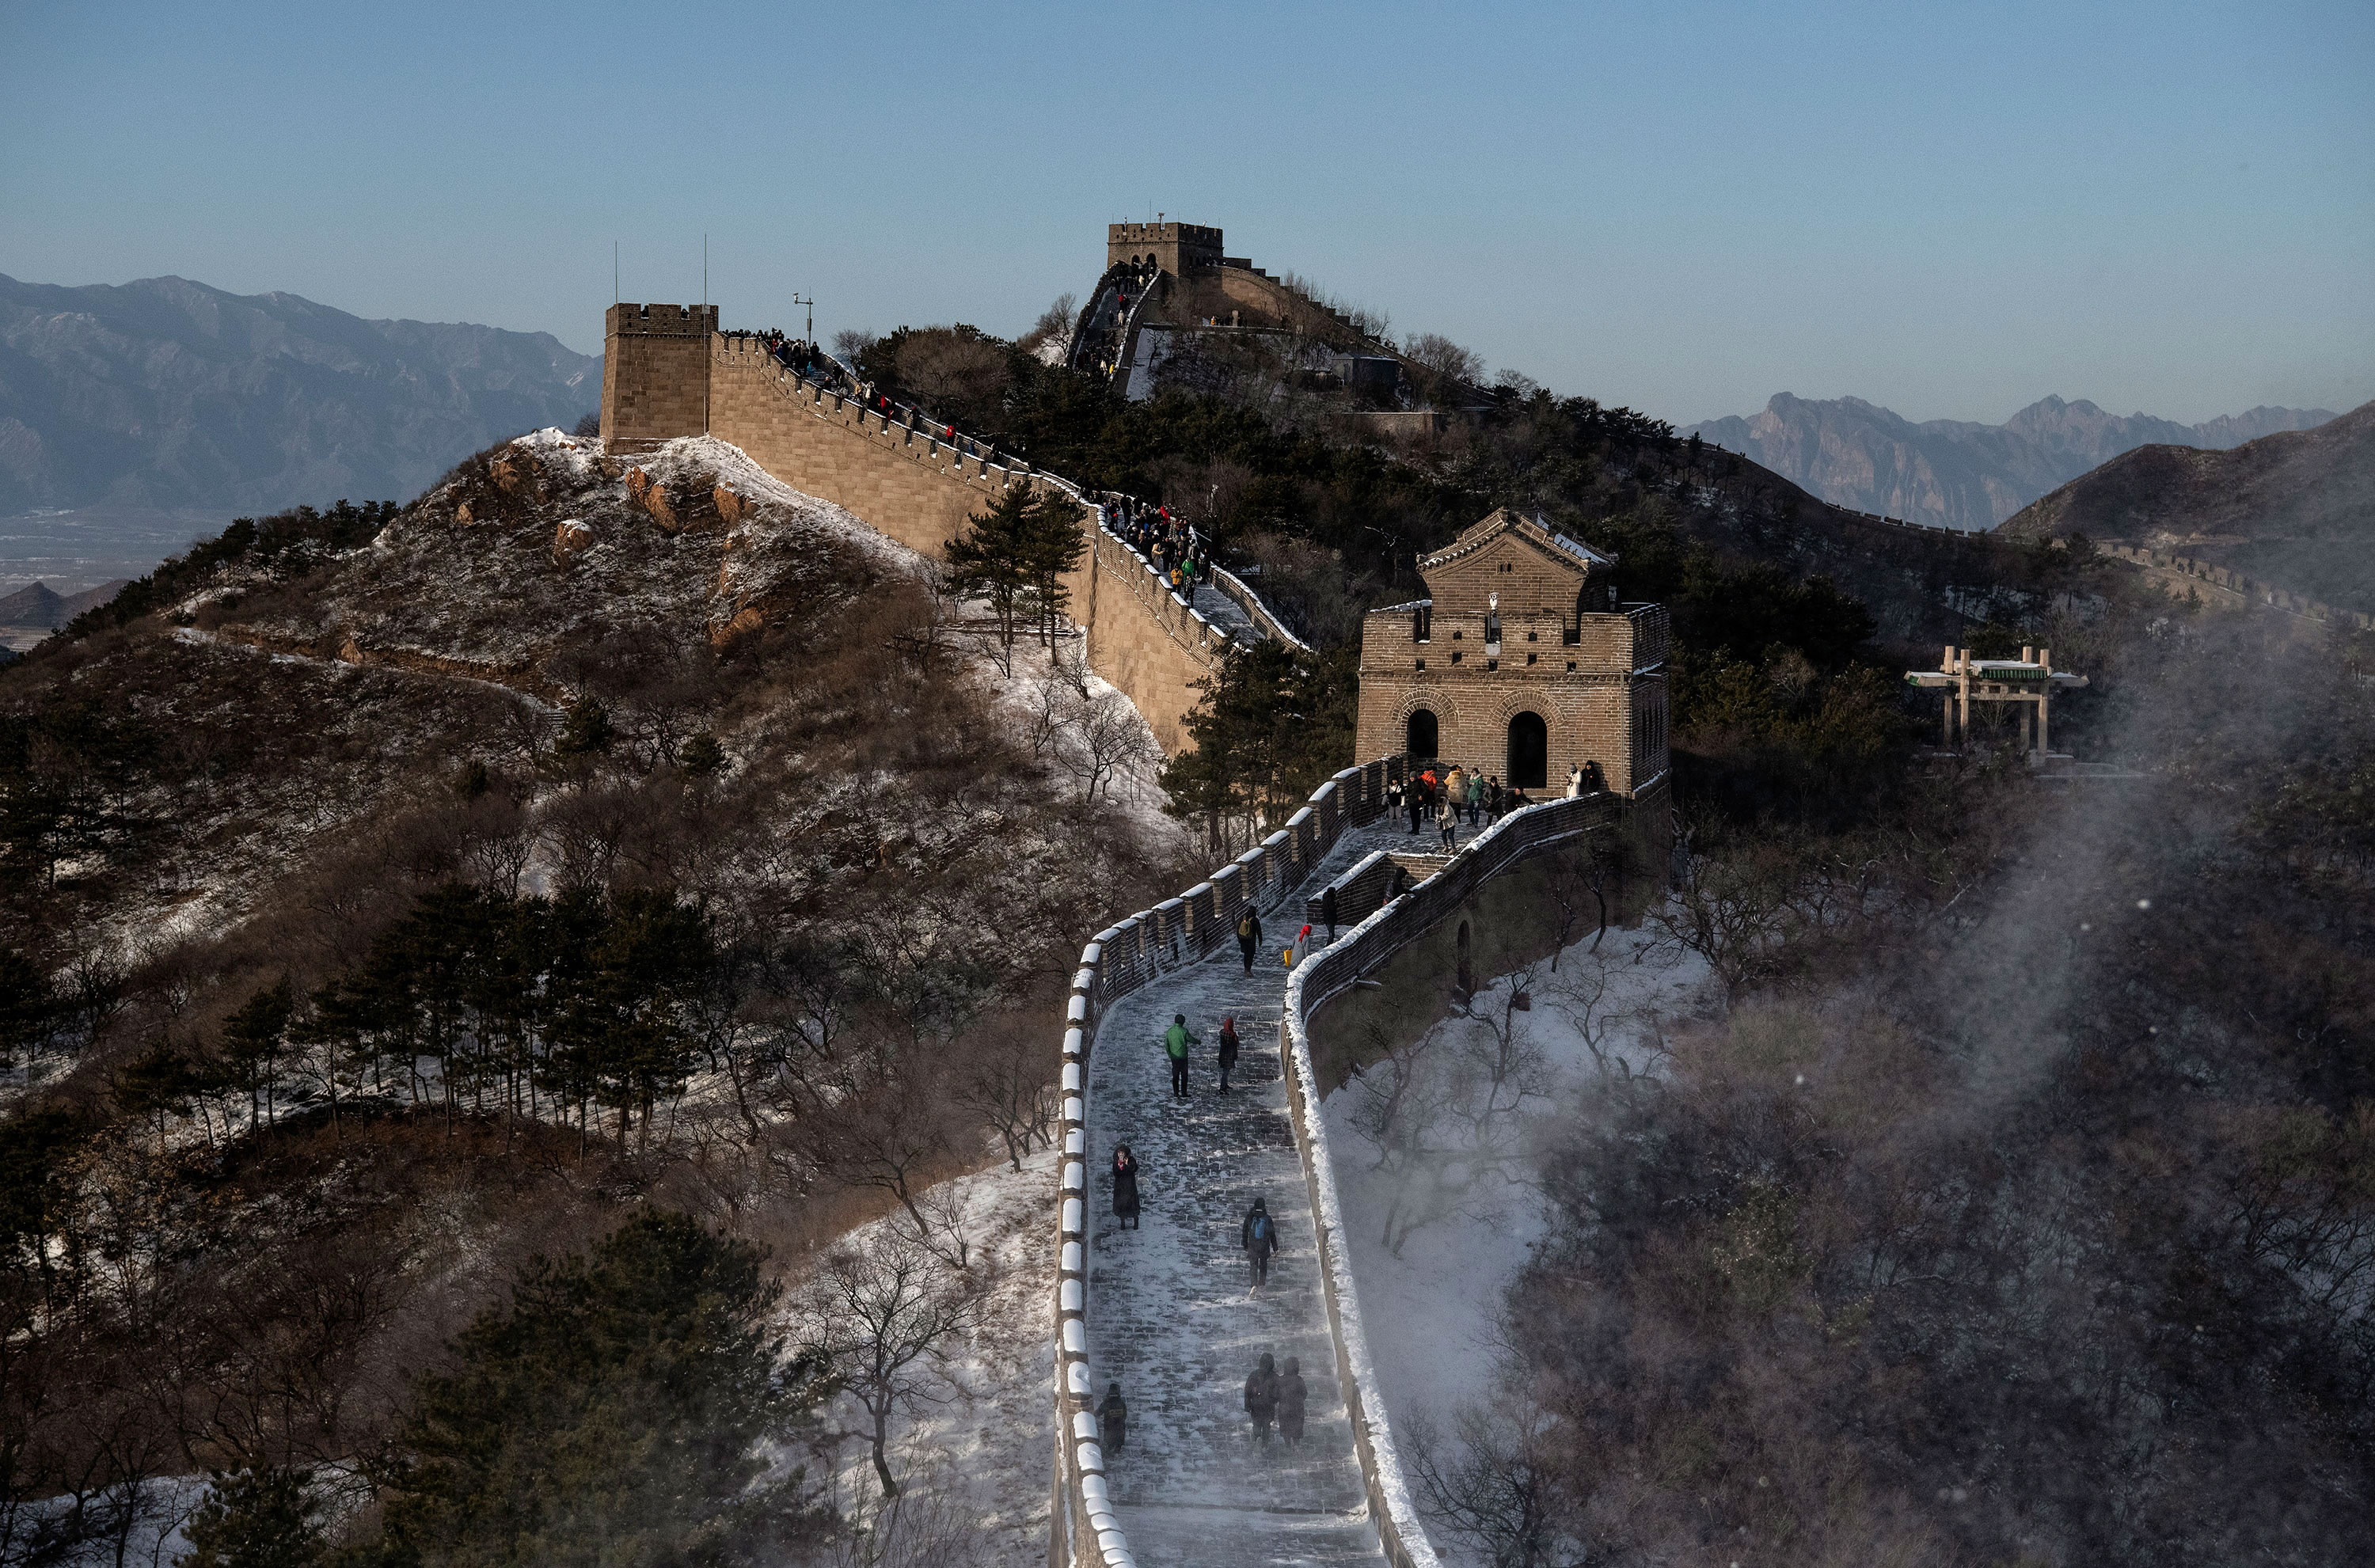 Great Wall of China Badaling section reopens to visitors | CNN Travel